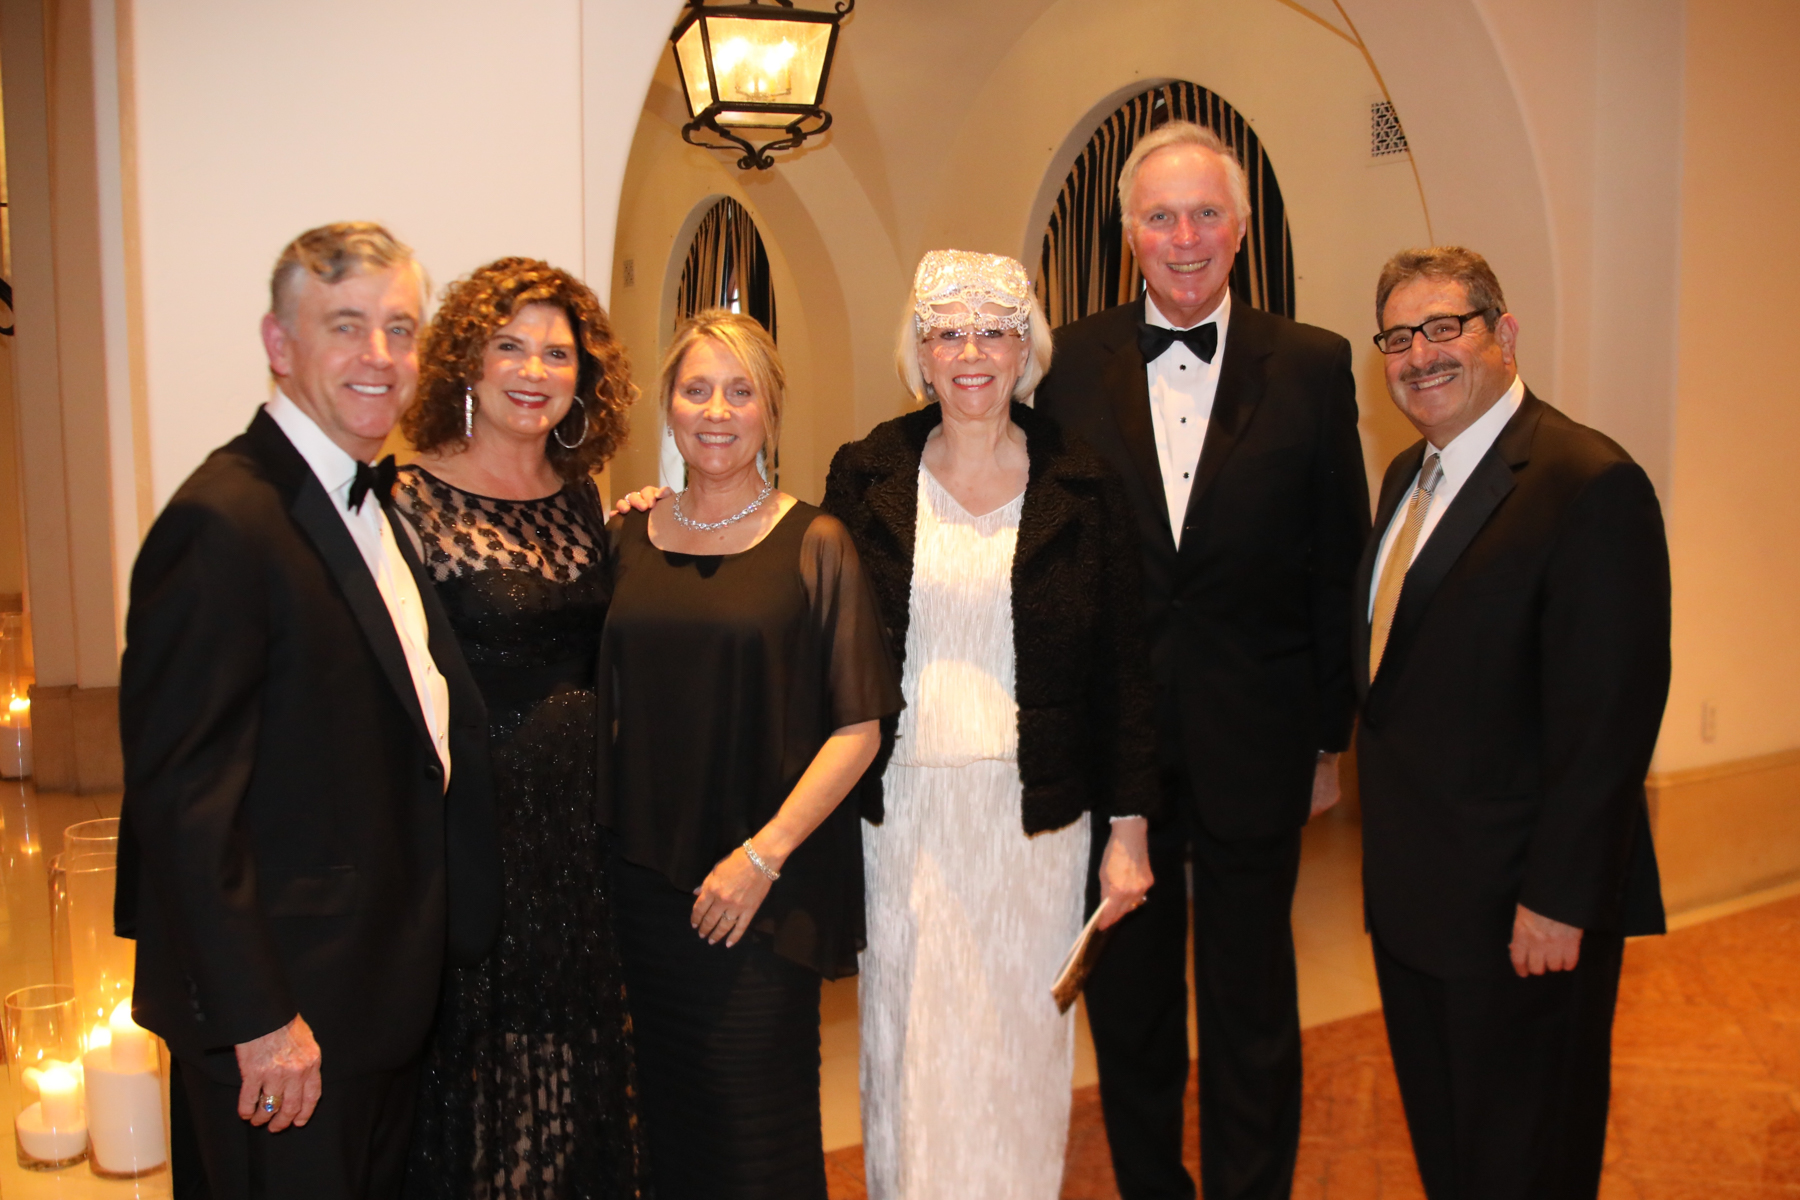 From left to right, former Cottage Health board member Marshall Chip Turner, Tiara Ball Committee member Betsy Turner and Lisa Iscovich, Tiara Ball Committee Chair Alexandra Nourse, Cottage Health board member Robert  Nourse, former board member Angel Iscovich, MD.